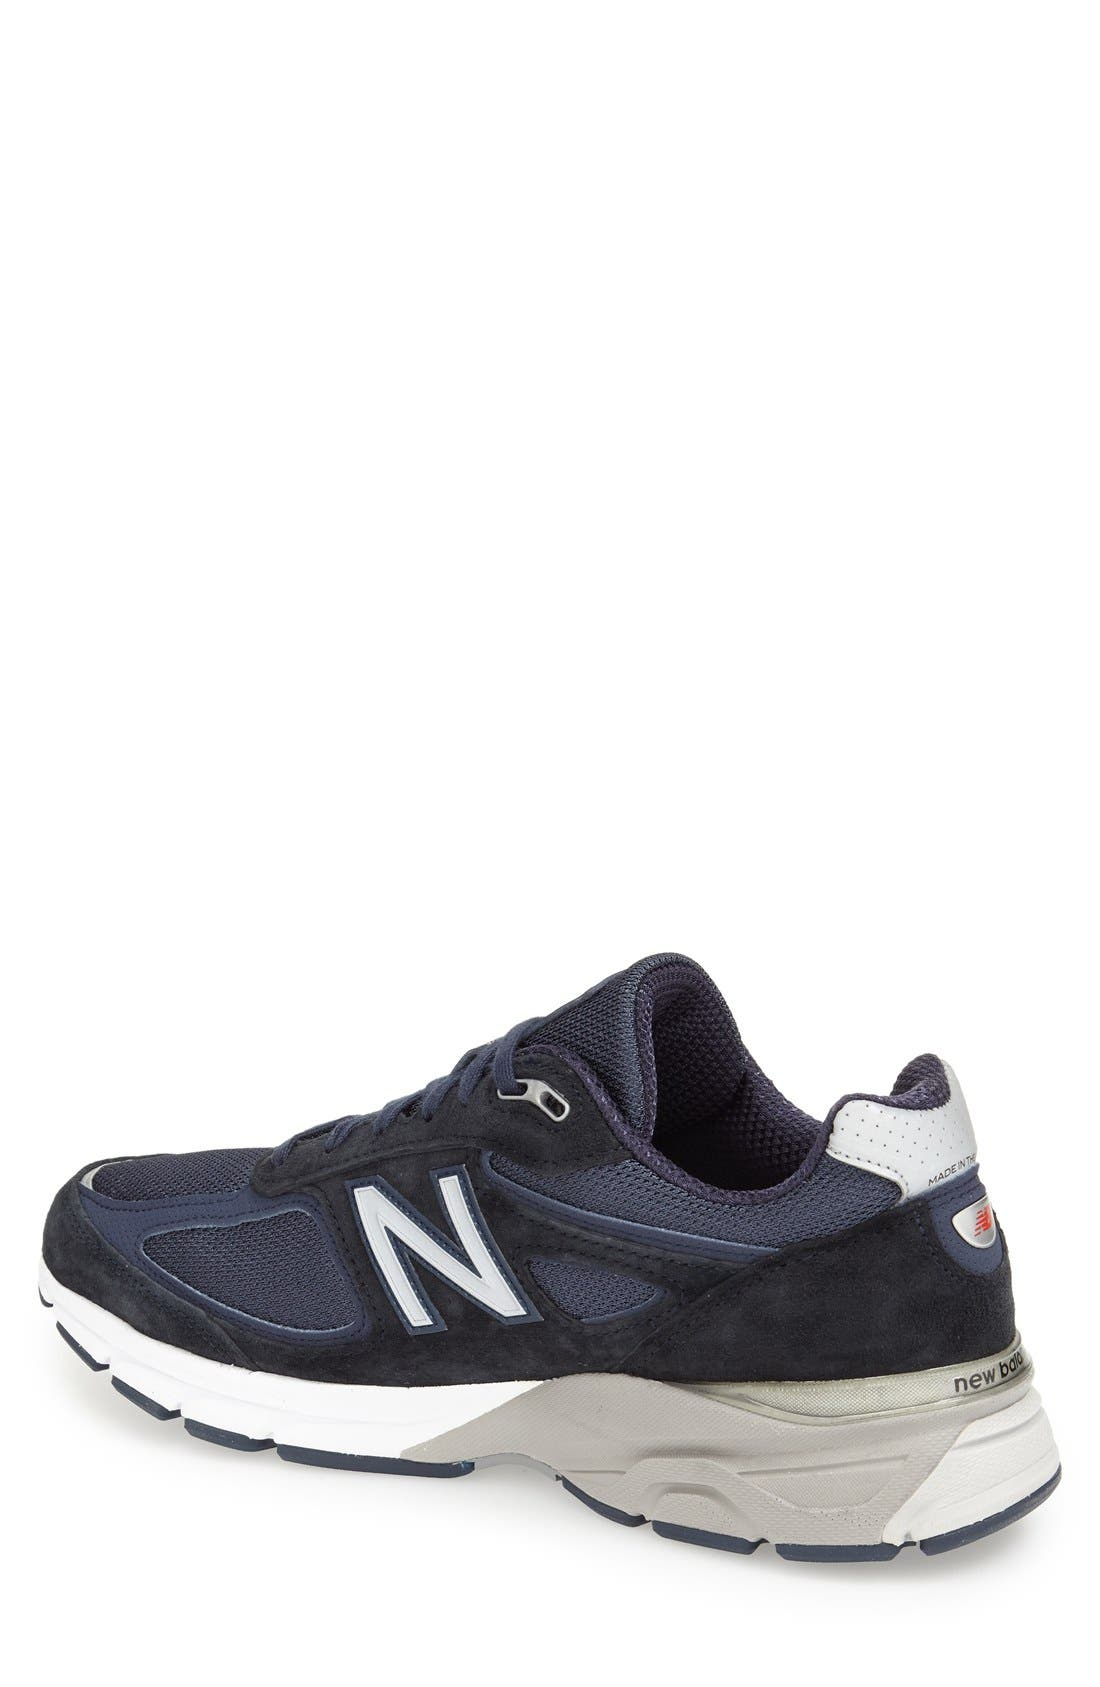 '990' Running Shoe,                             Alternate thumbnail 2, color,                             NAVY